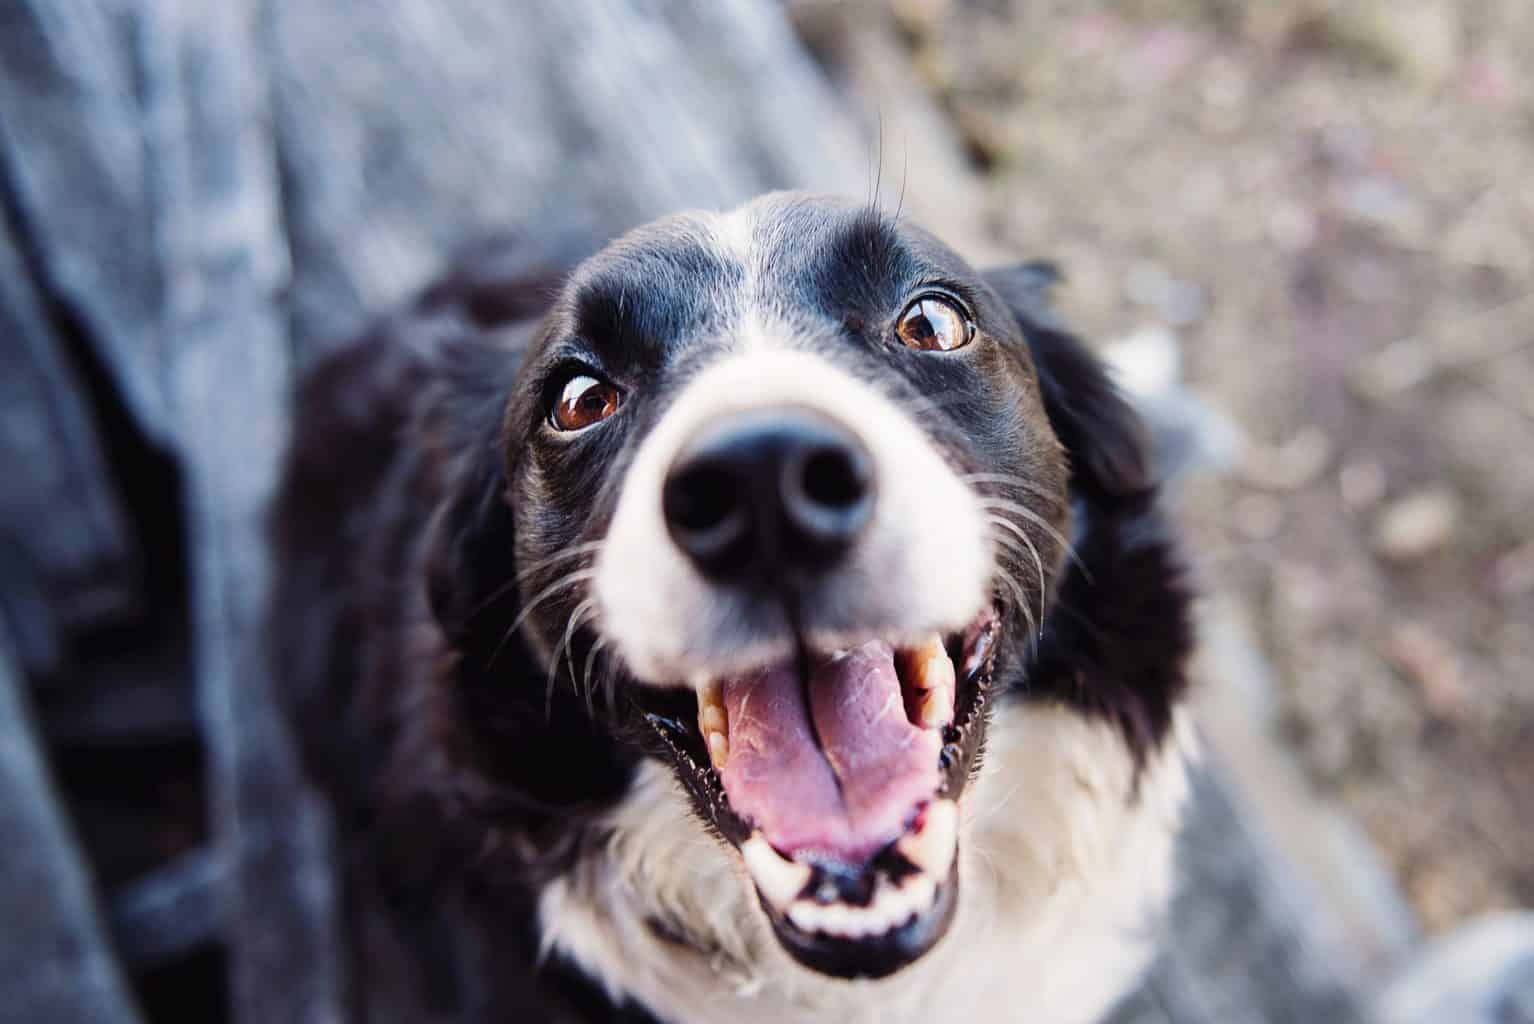 Excited looking dog